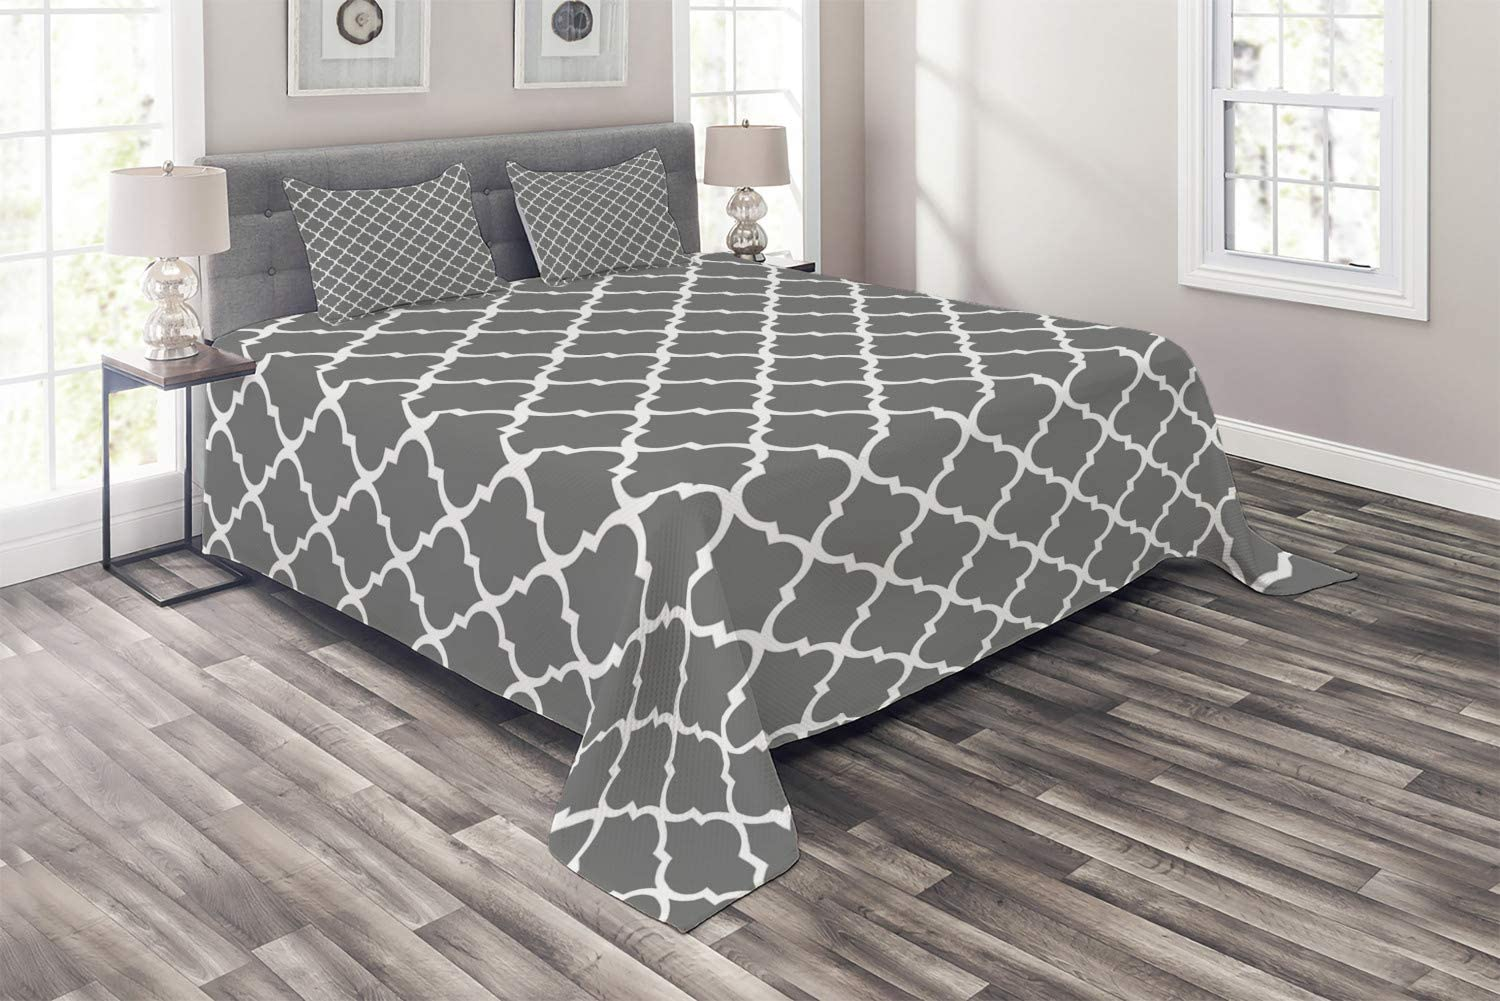 Ambesonne Grey Coverlet, Quatrefoil Pattern Barbed Design Geometric Leaf Print Lattice Country Life Inspired, 3 Piece Decorative Quilted Bedspread Set with 2 Pillow Shams, King Size, Gray White